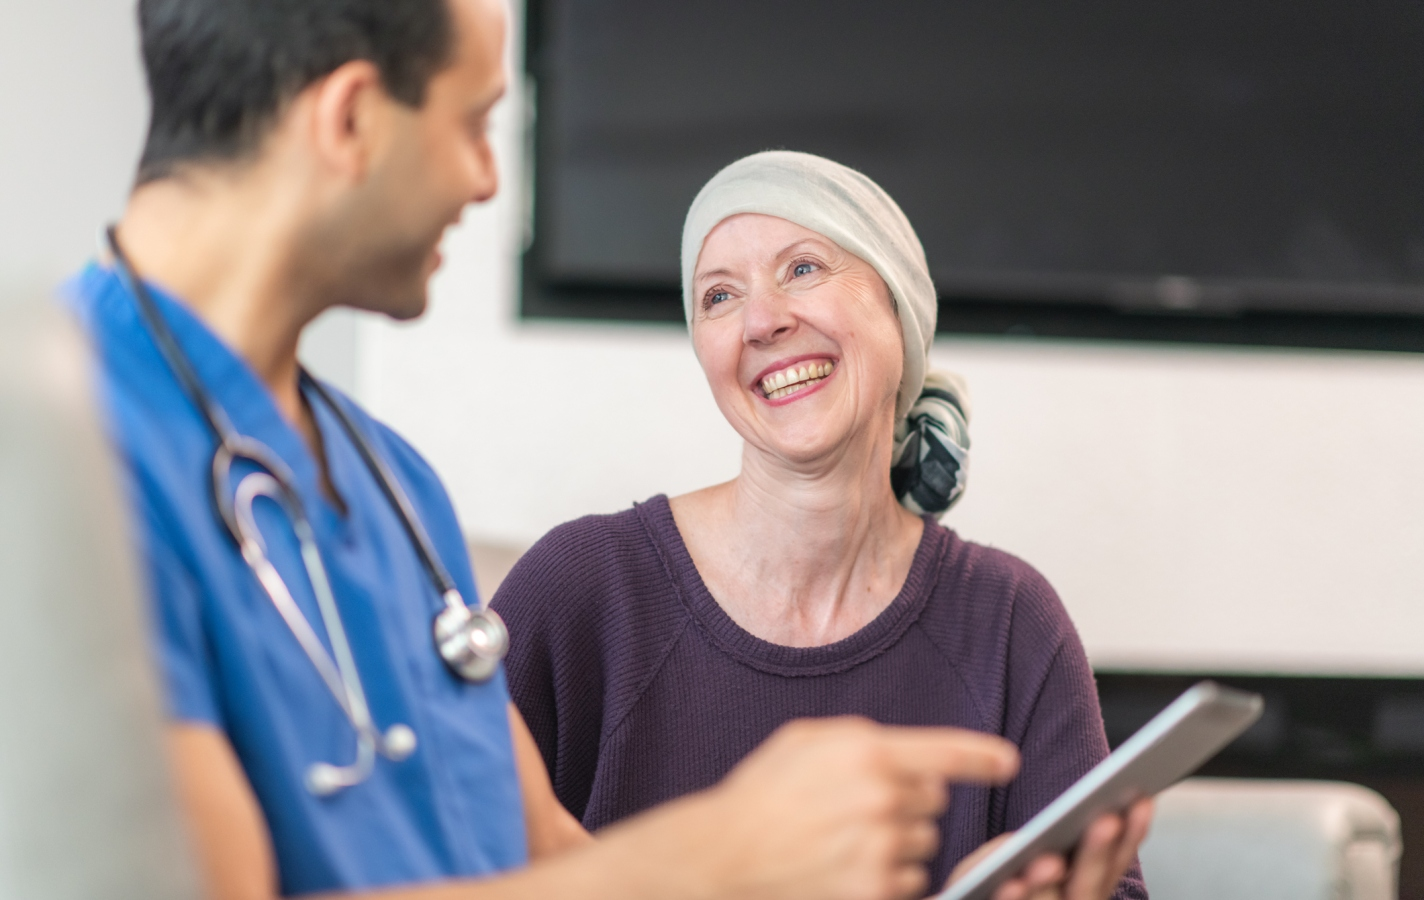 Woman with cancer meeting with doctor